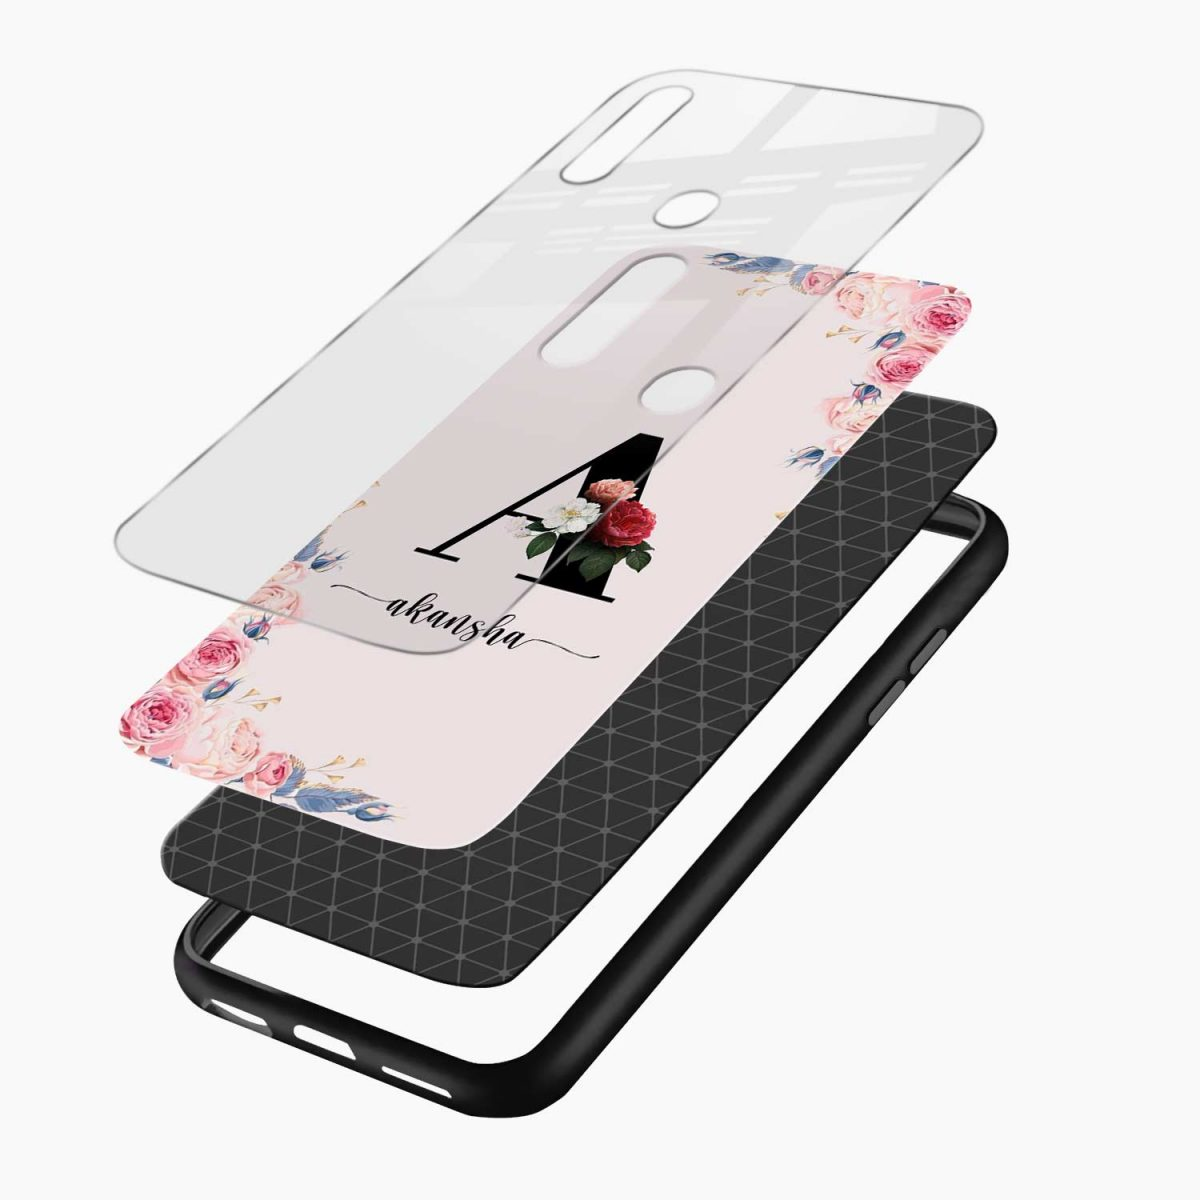 floral name personalised layers view oppo a31 back cover